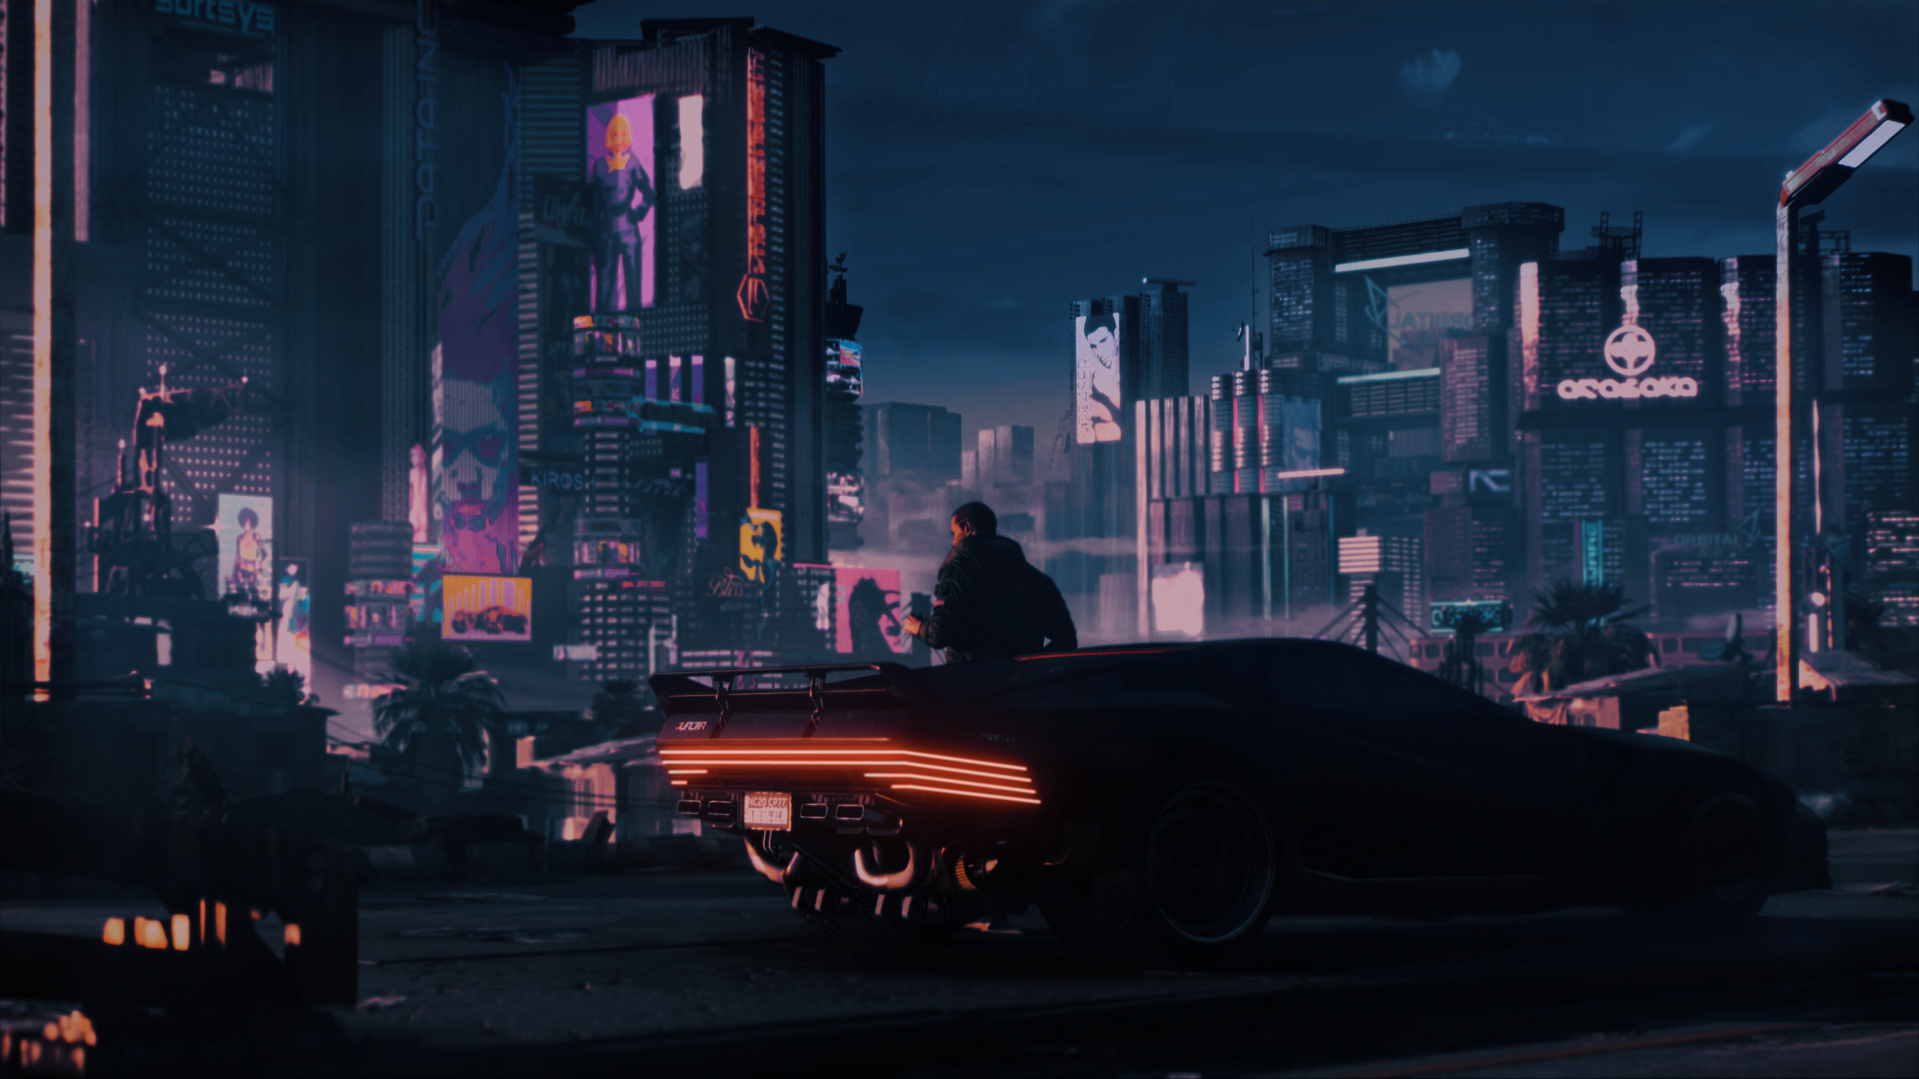 Cyberpunk2077wallpaper In 2020 Cyberpunk 2077 Cyberpunk Beach Painting